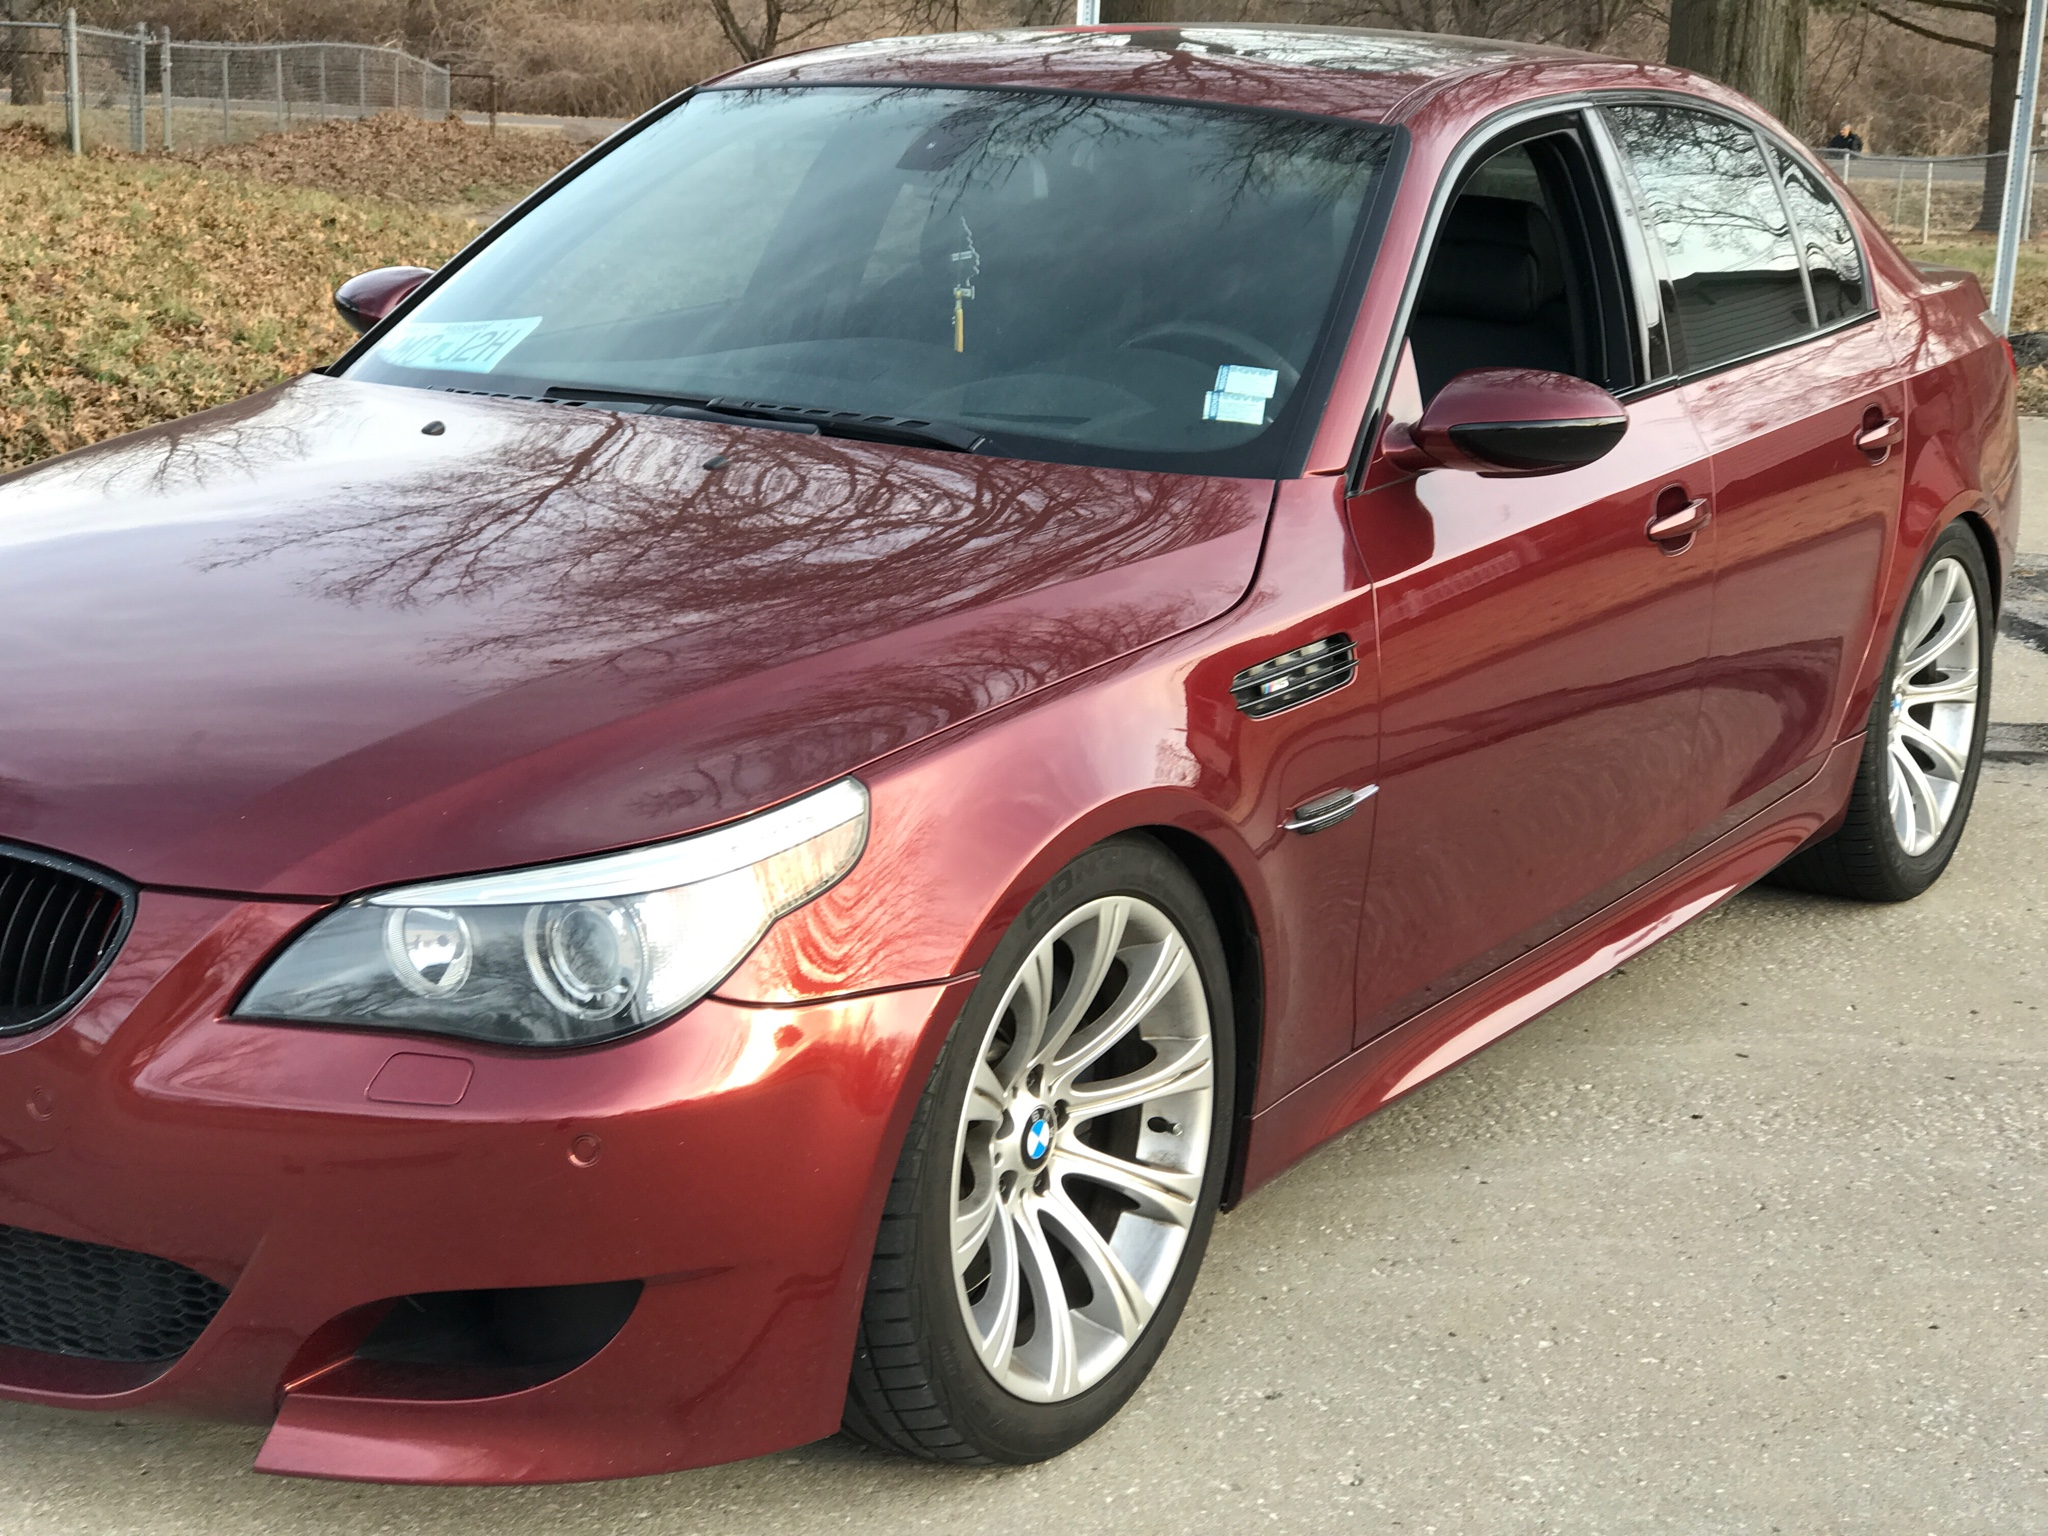 Worksheet. E60 0310 For Sale 2006 BMW M5 Indianapolis Red  BMW M5 Forum